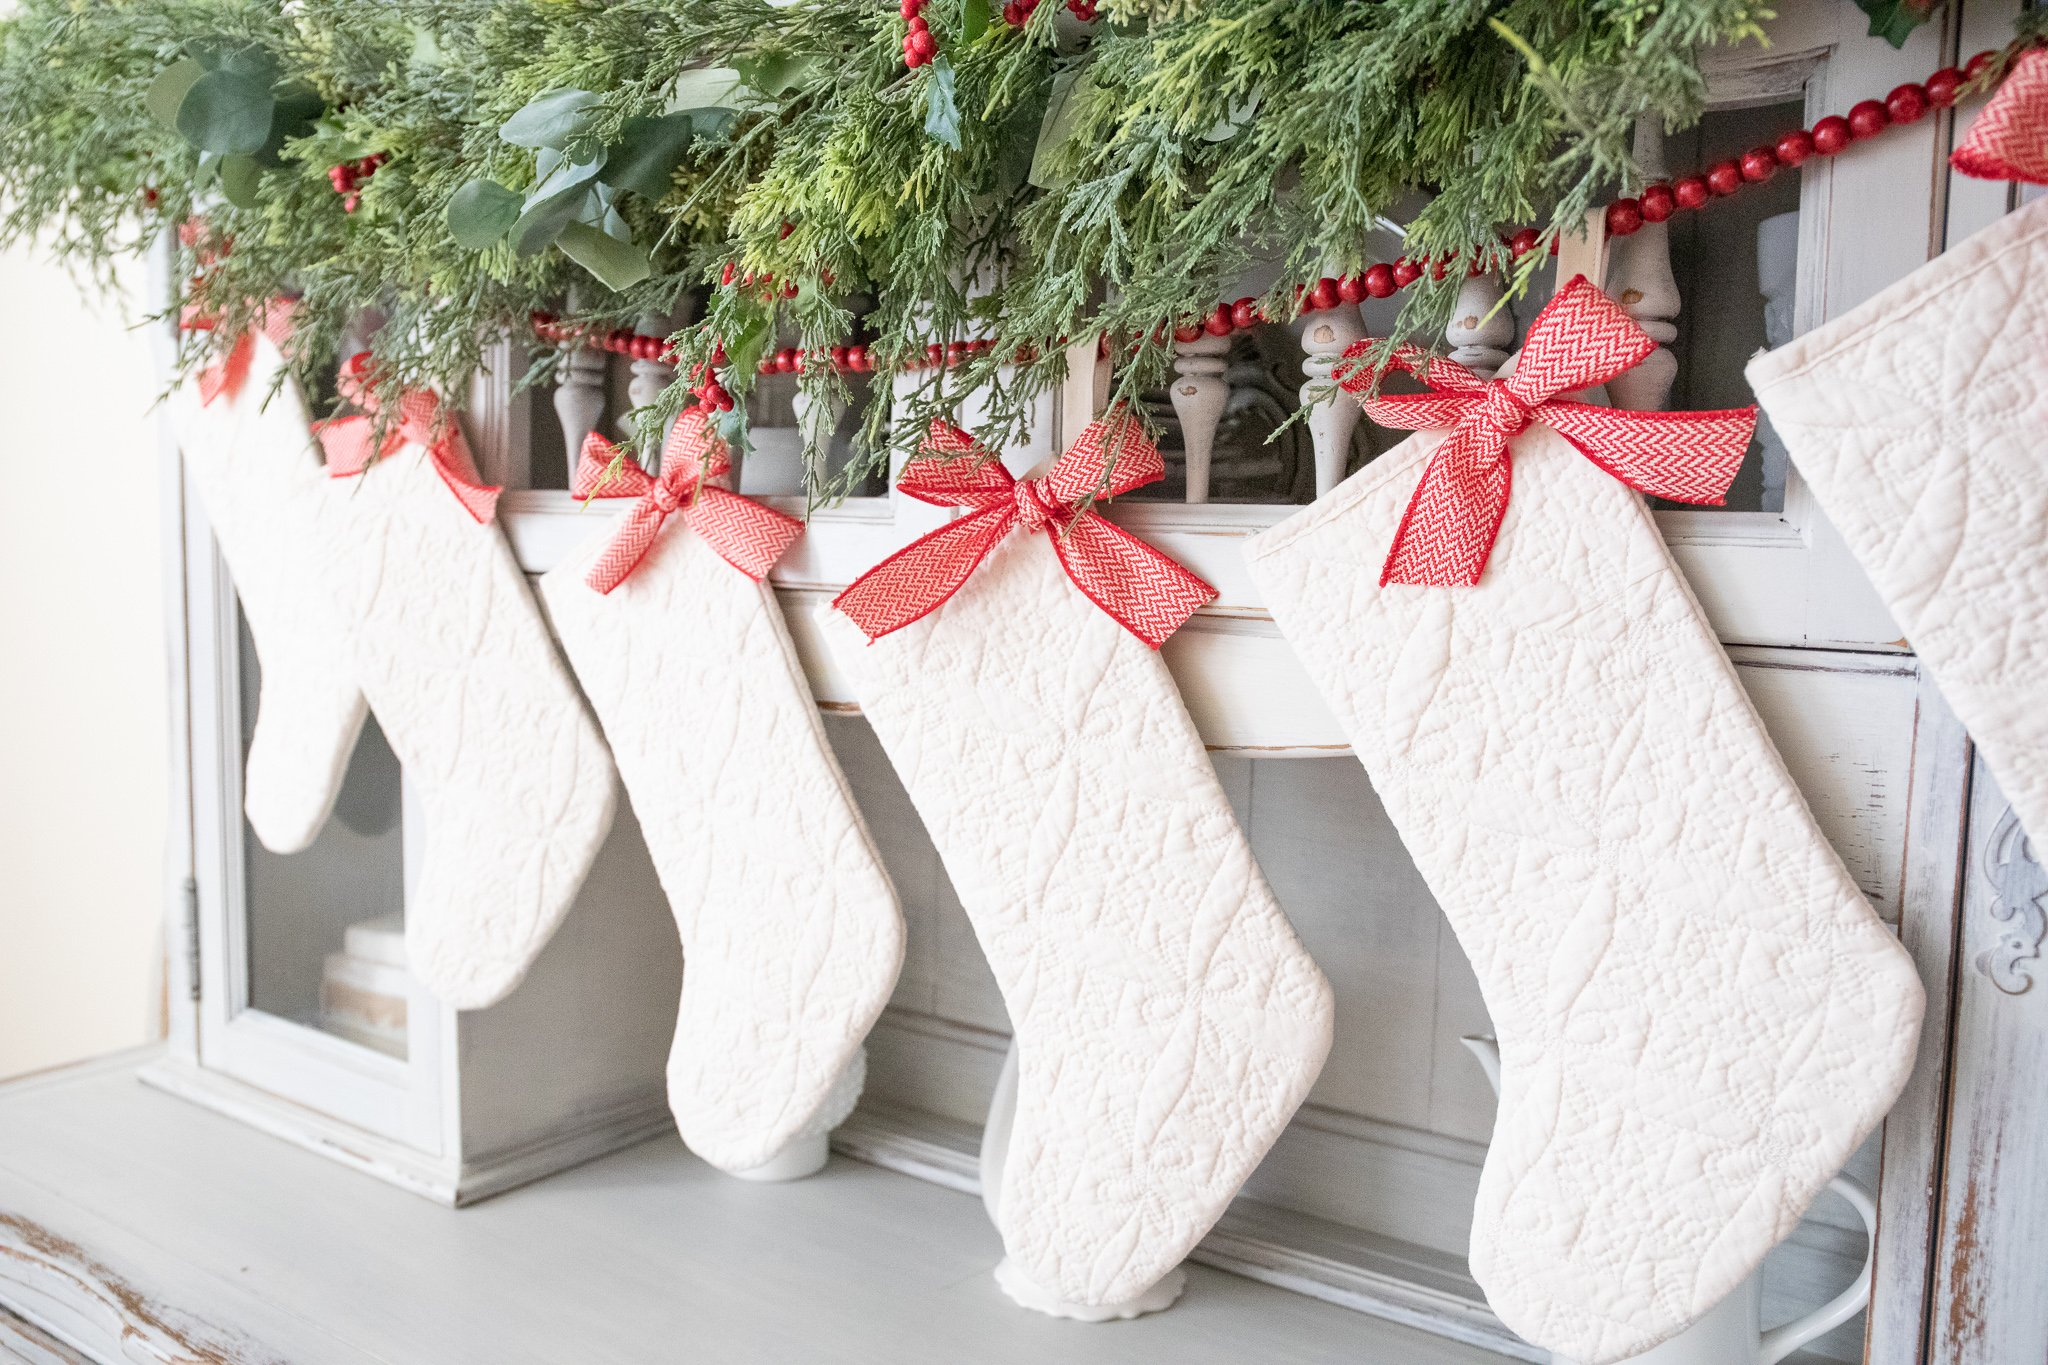 Christmas Decorations-Red and Green Classic Christmas Decor Mantle Stockings